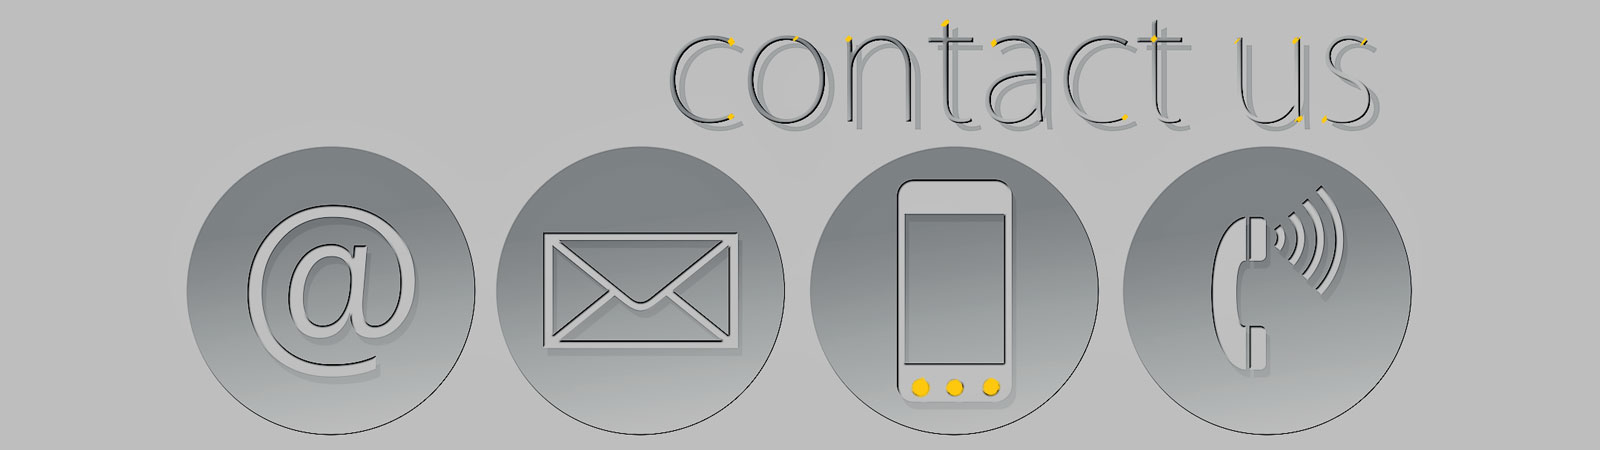 Contact Us title with communication symbols